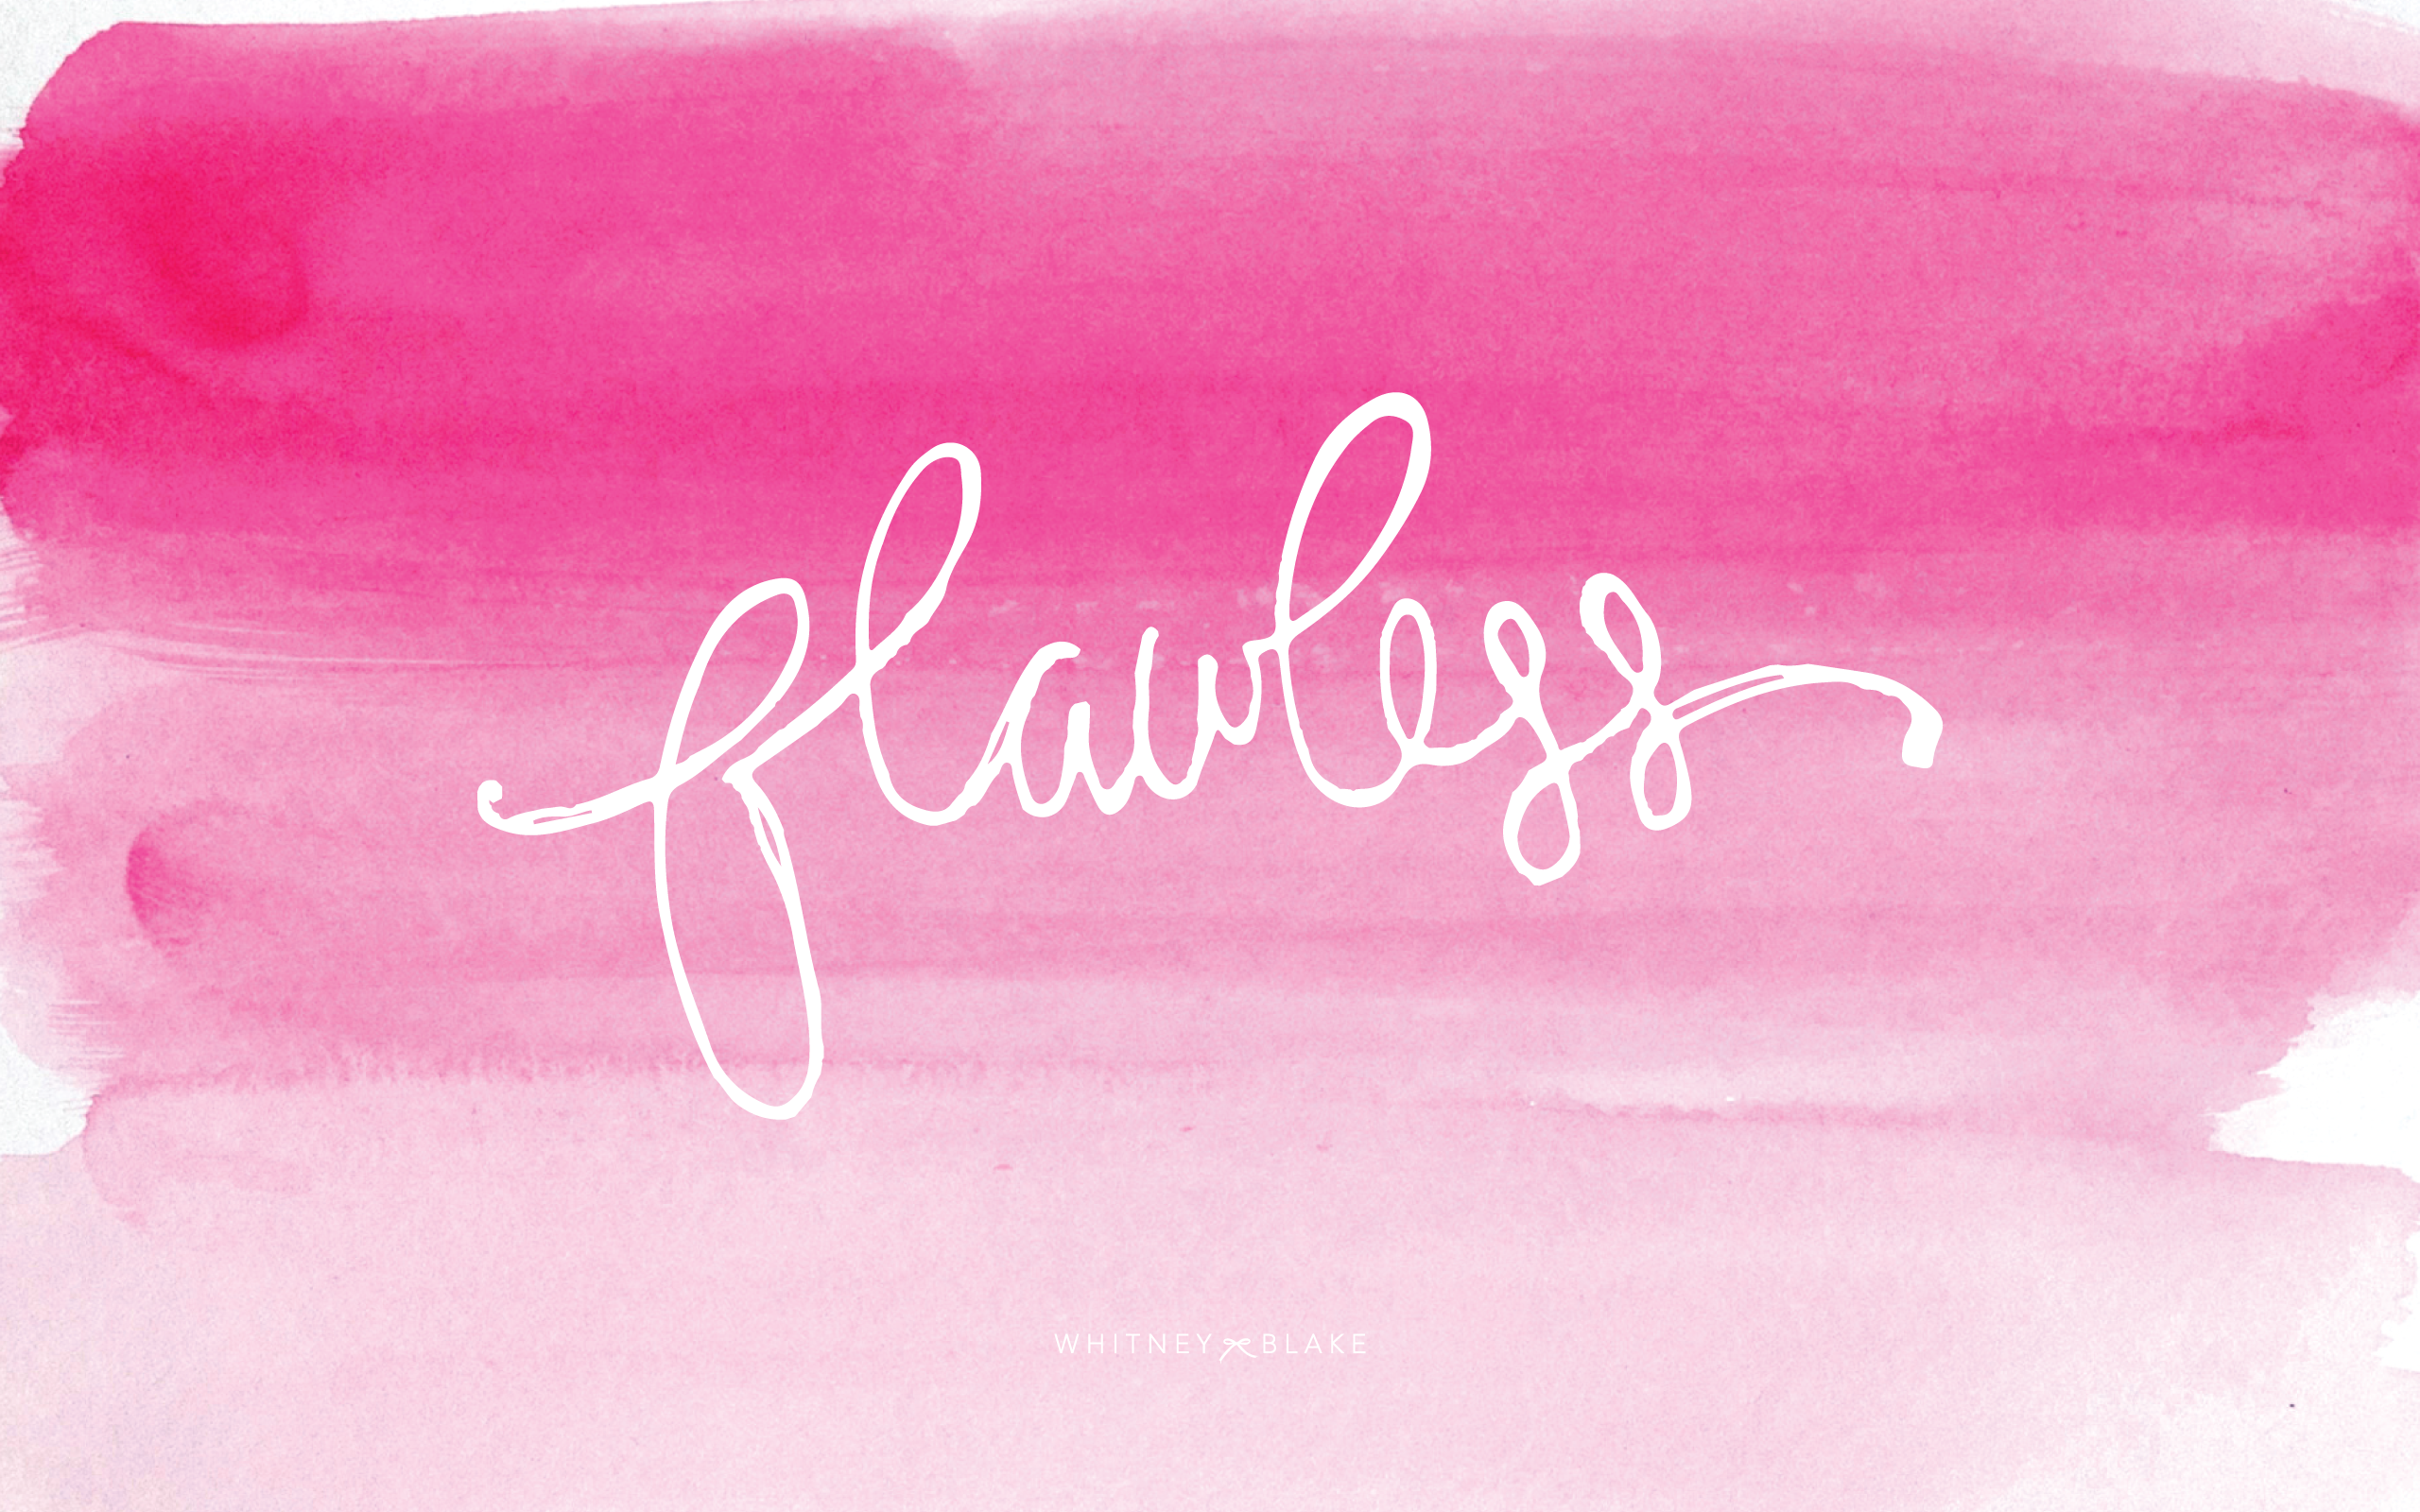 download the pink flawless iphone 4 iphone5 or desktop background